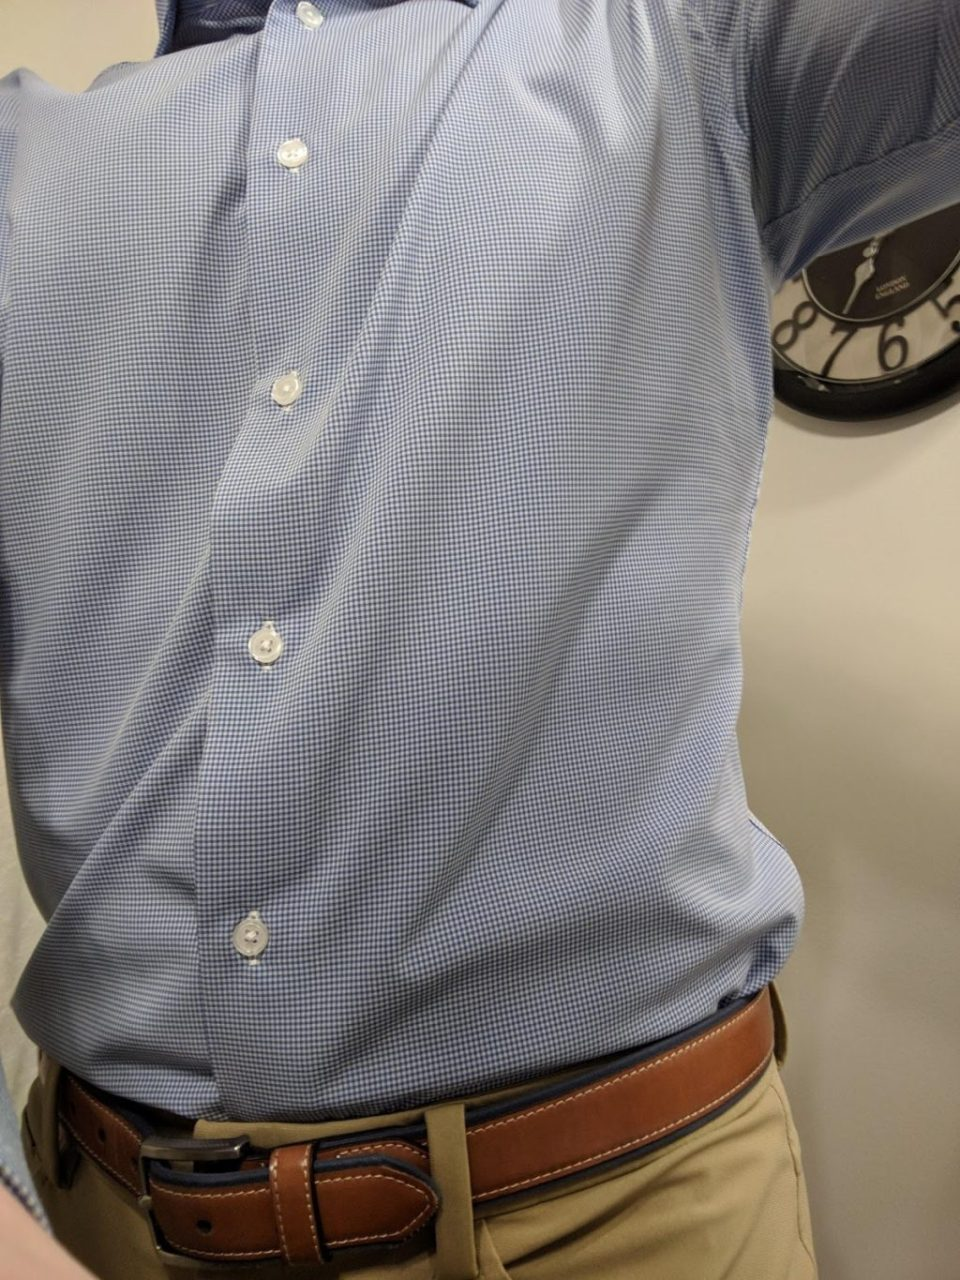 Front of shirt 2 - State and Liberty Shirt Review